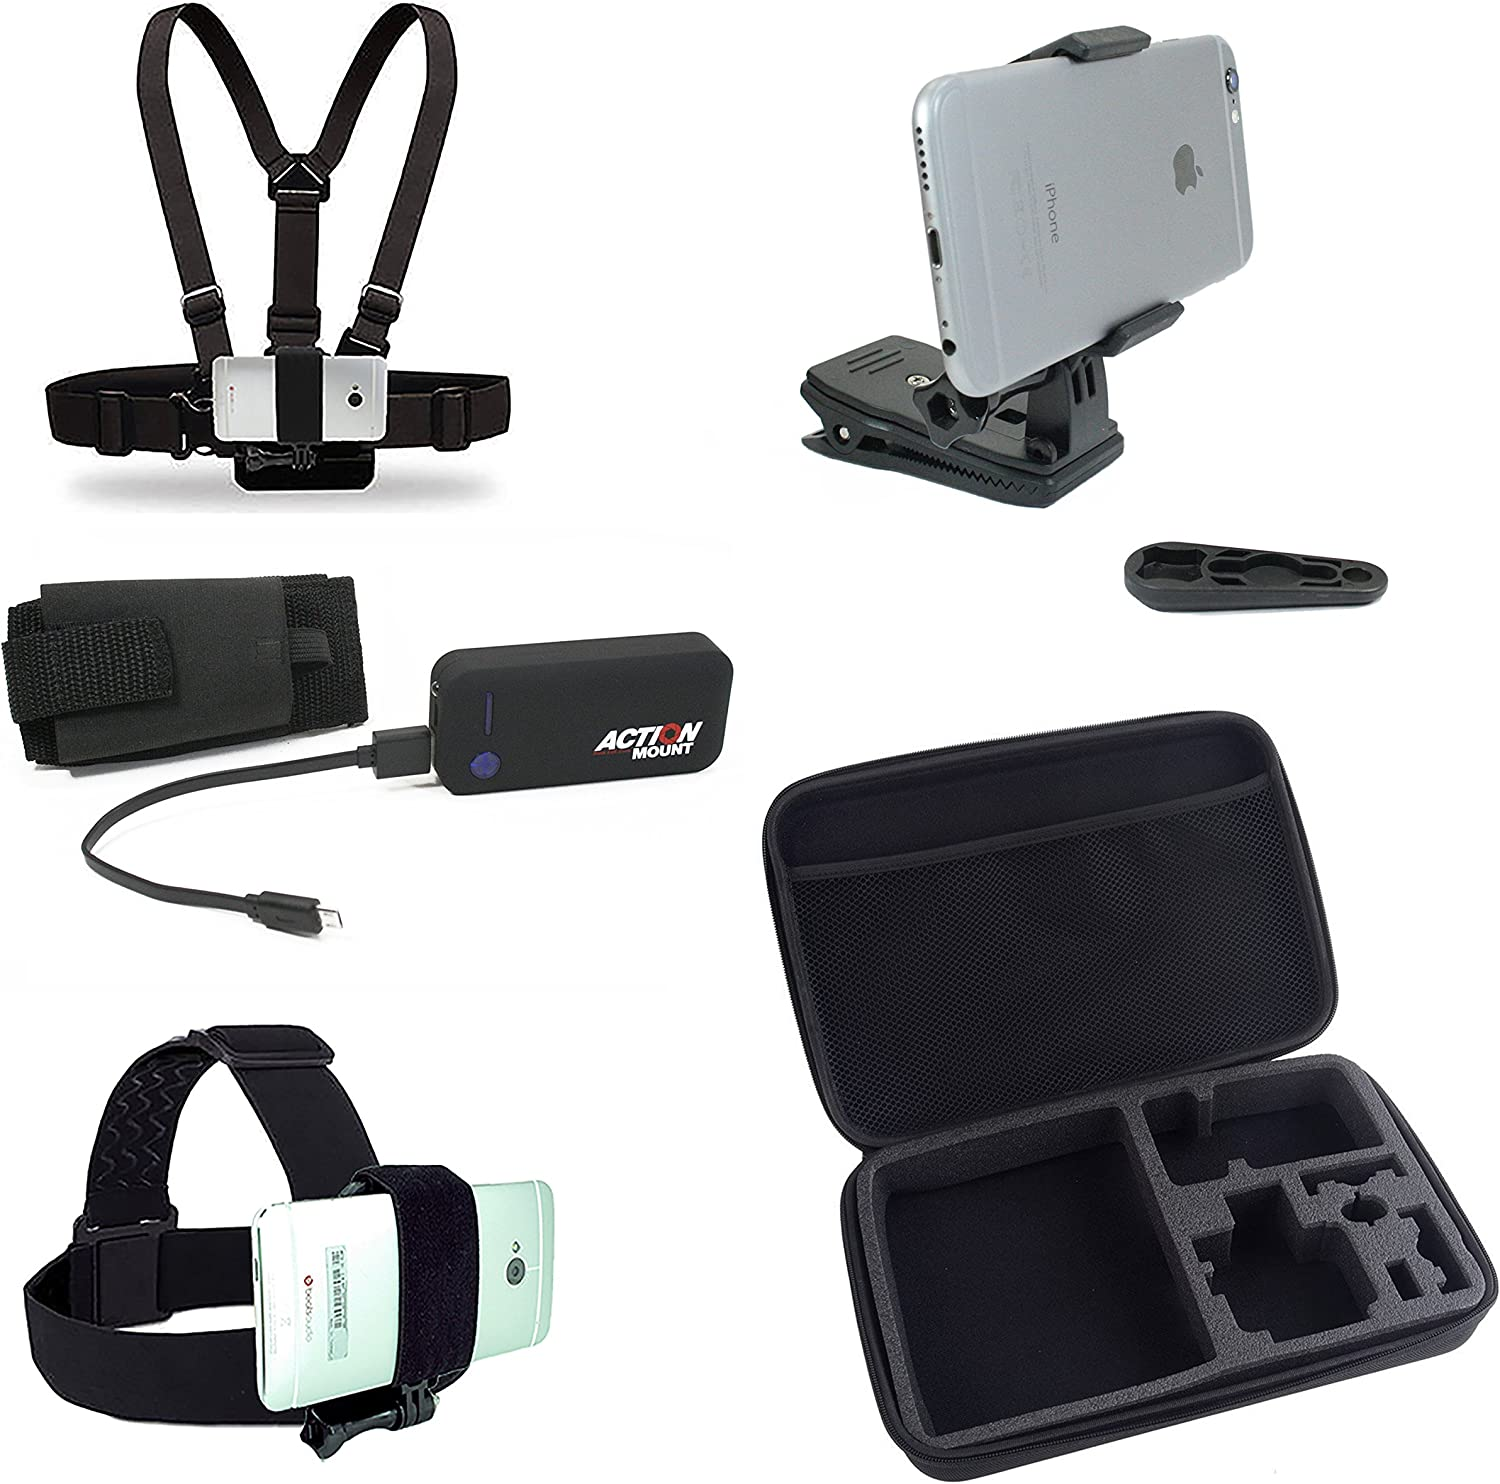 Action Mount Wearable Battery Charger | 5200mAh External Power Pack. Kit Includes Chest Mount, Head Mount, Backpack Clip, Locking Phone Clamp Adapter. (Wearable Mount Kit & Battery) 81eIOIKhYgL